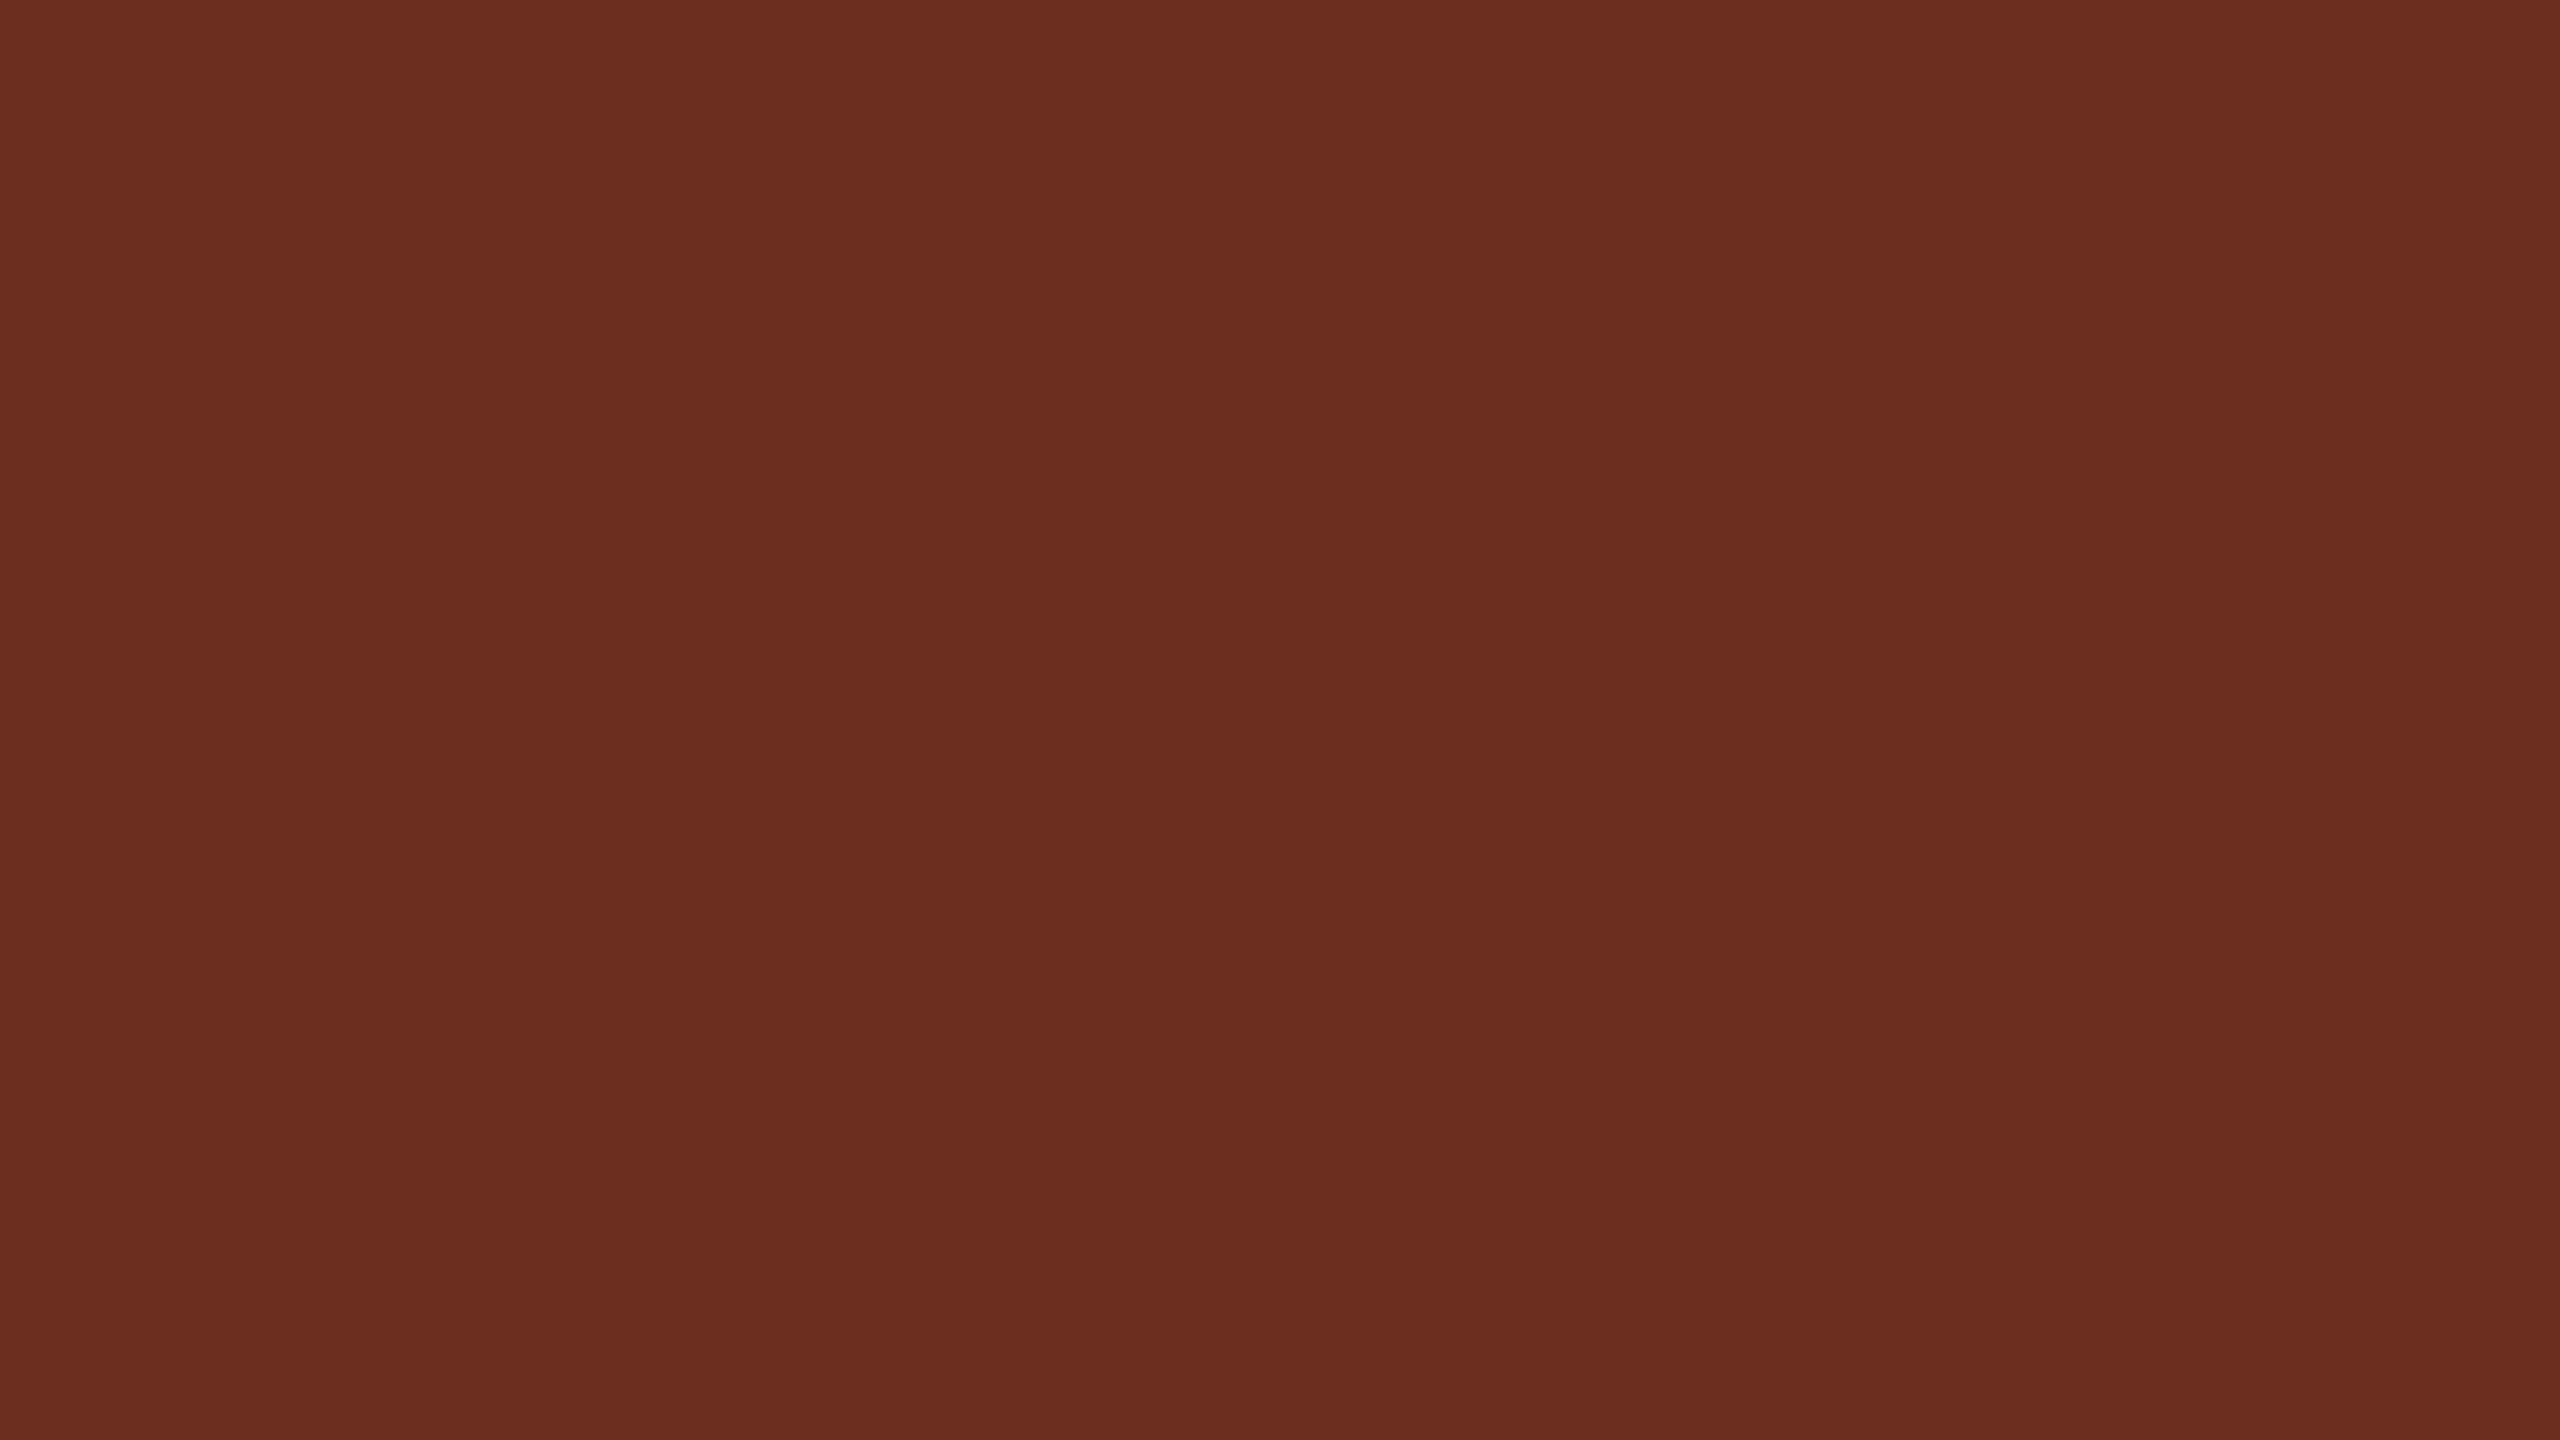 2560x1440 Liver Organ Solid Color Background 2560x1440